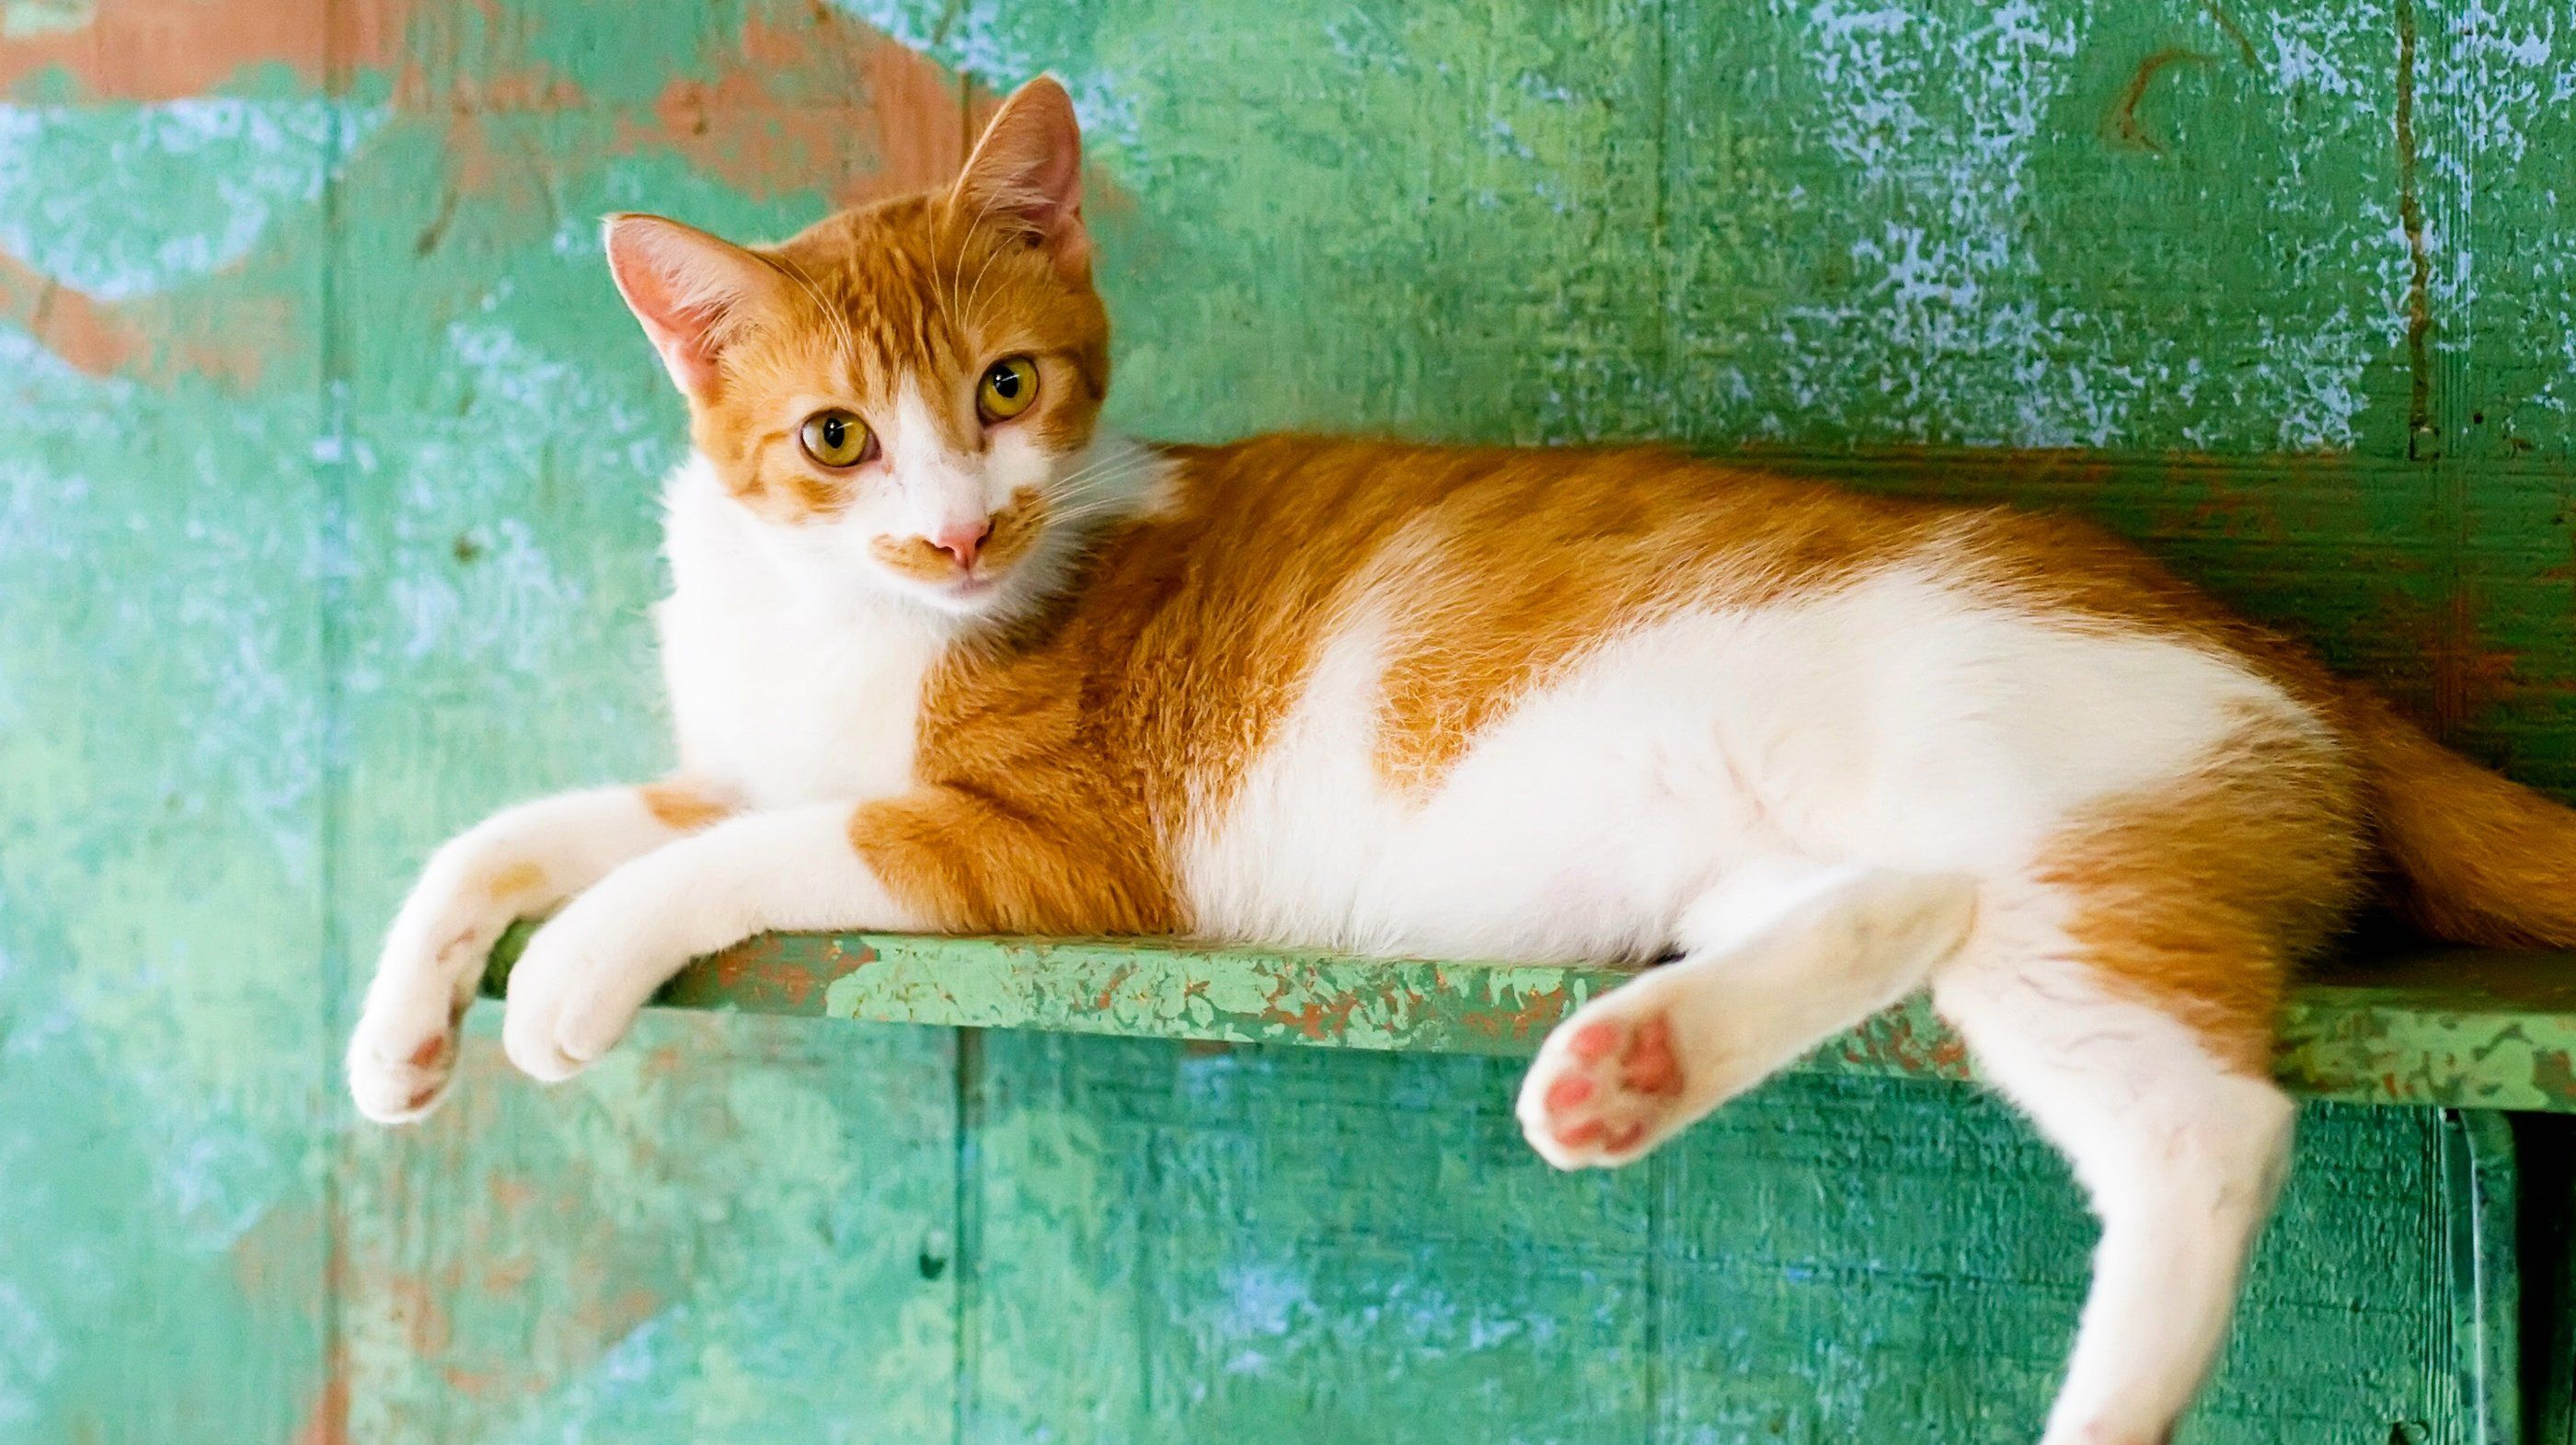 Orange and white cat on a shelf.